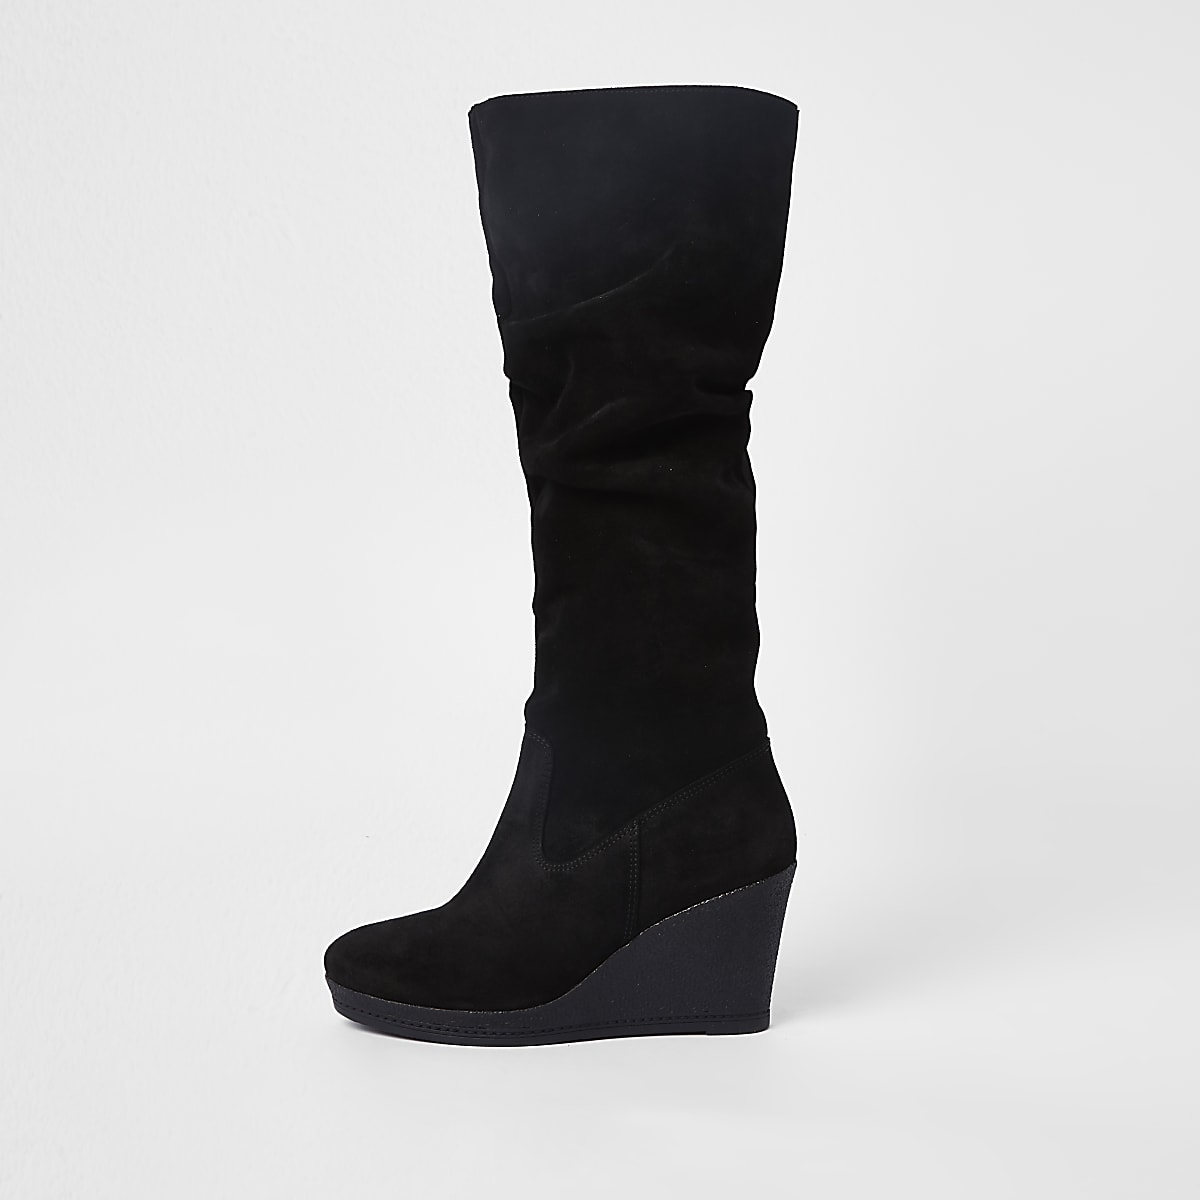 a16ec638e70 Black suede knee high wedge boots - Boots - Shoes   Boots - women